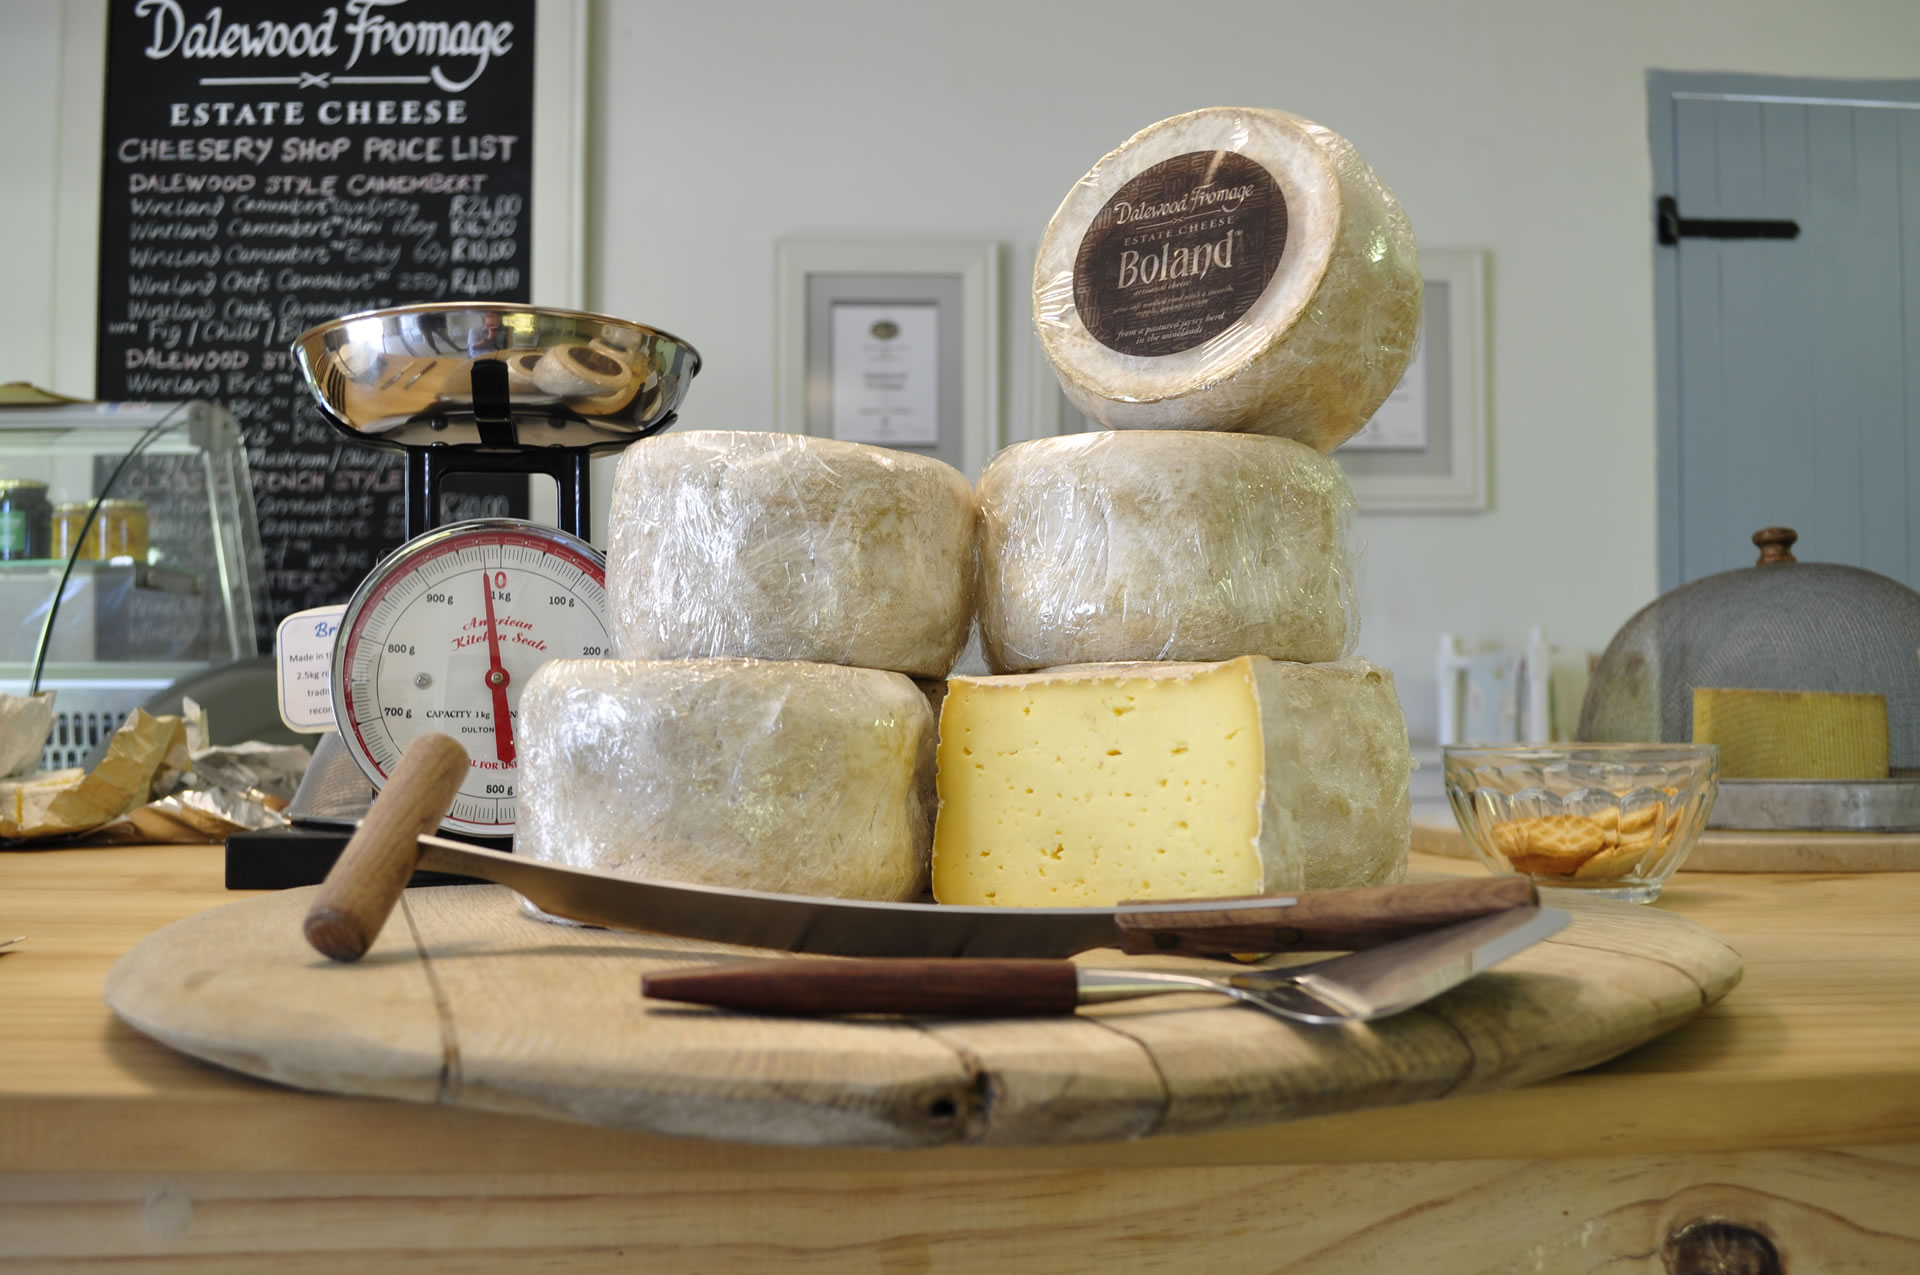 Dalewood Fromage artisanal cheesery shop in the Cape Winelands